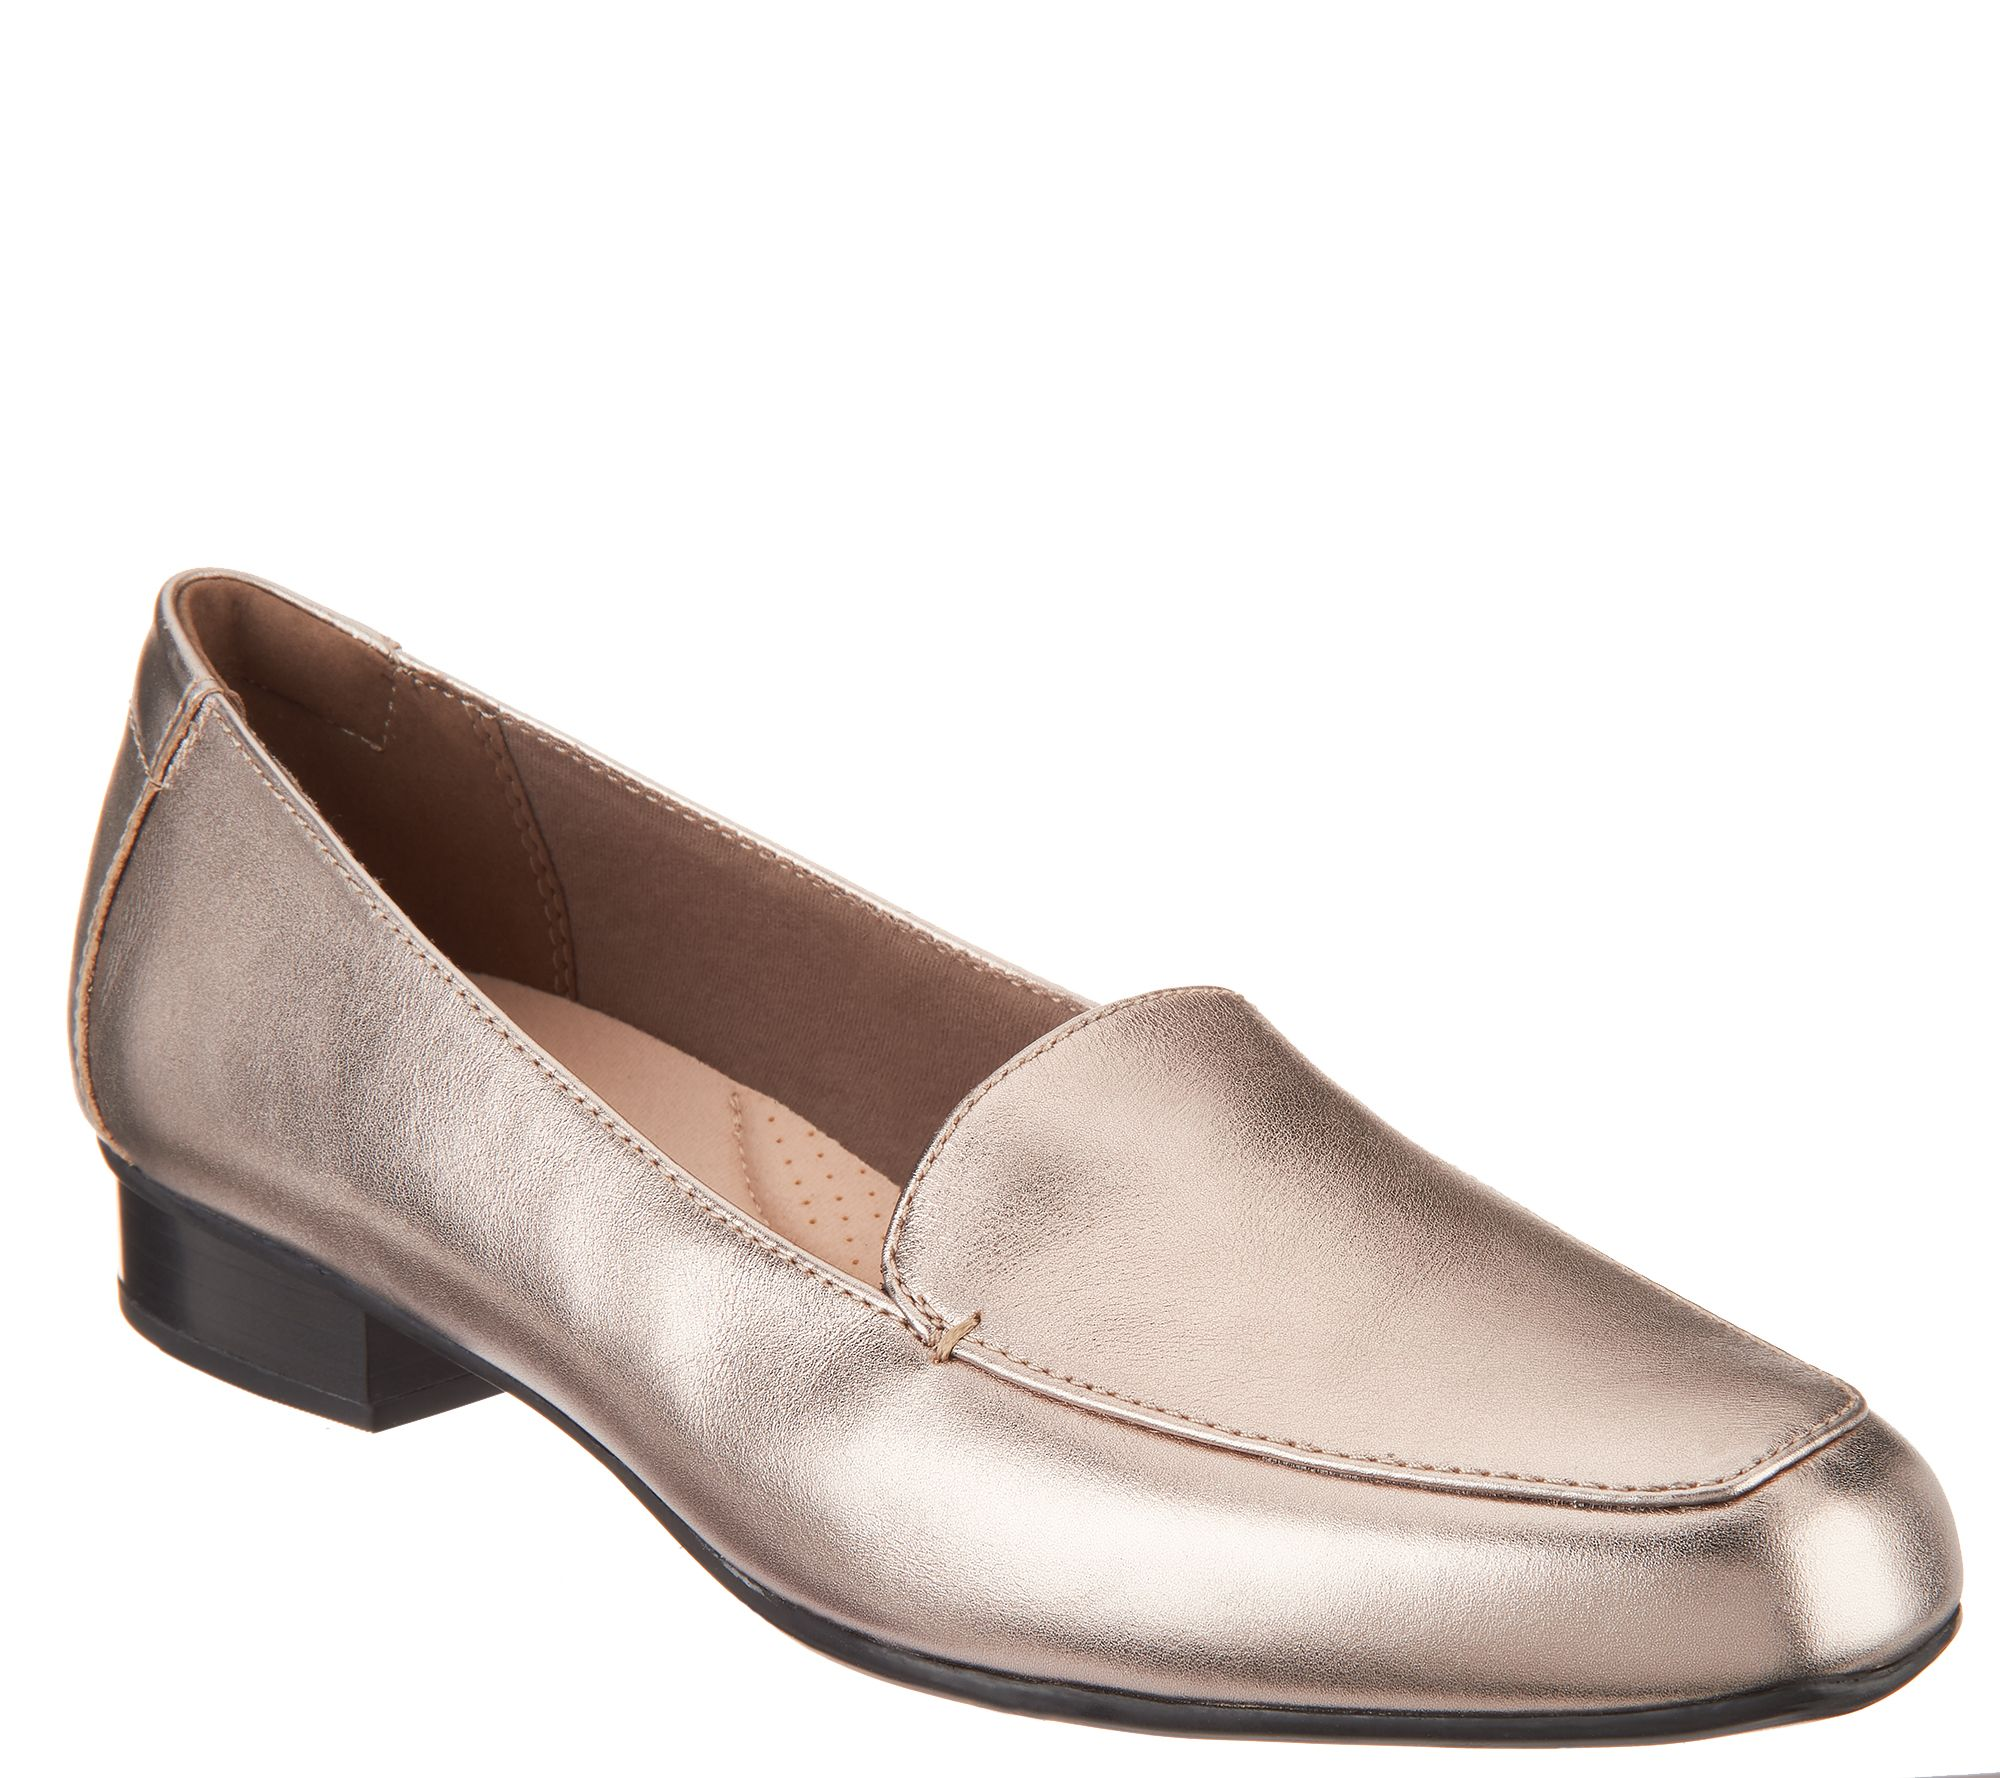 f95671ab Clarks Collection Leather Slip-On Loafers - Juliet Lora — QVC.com